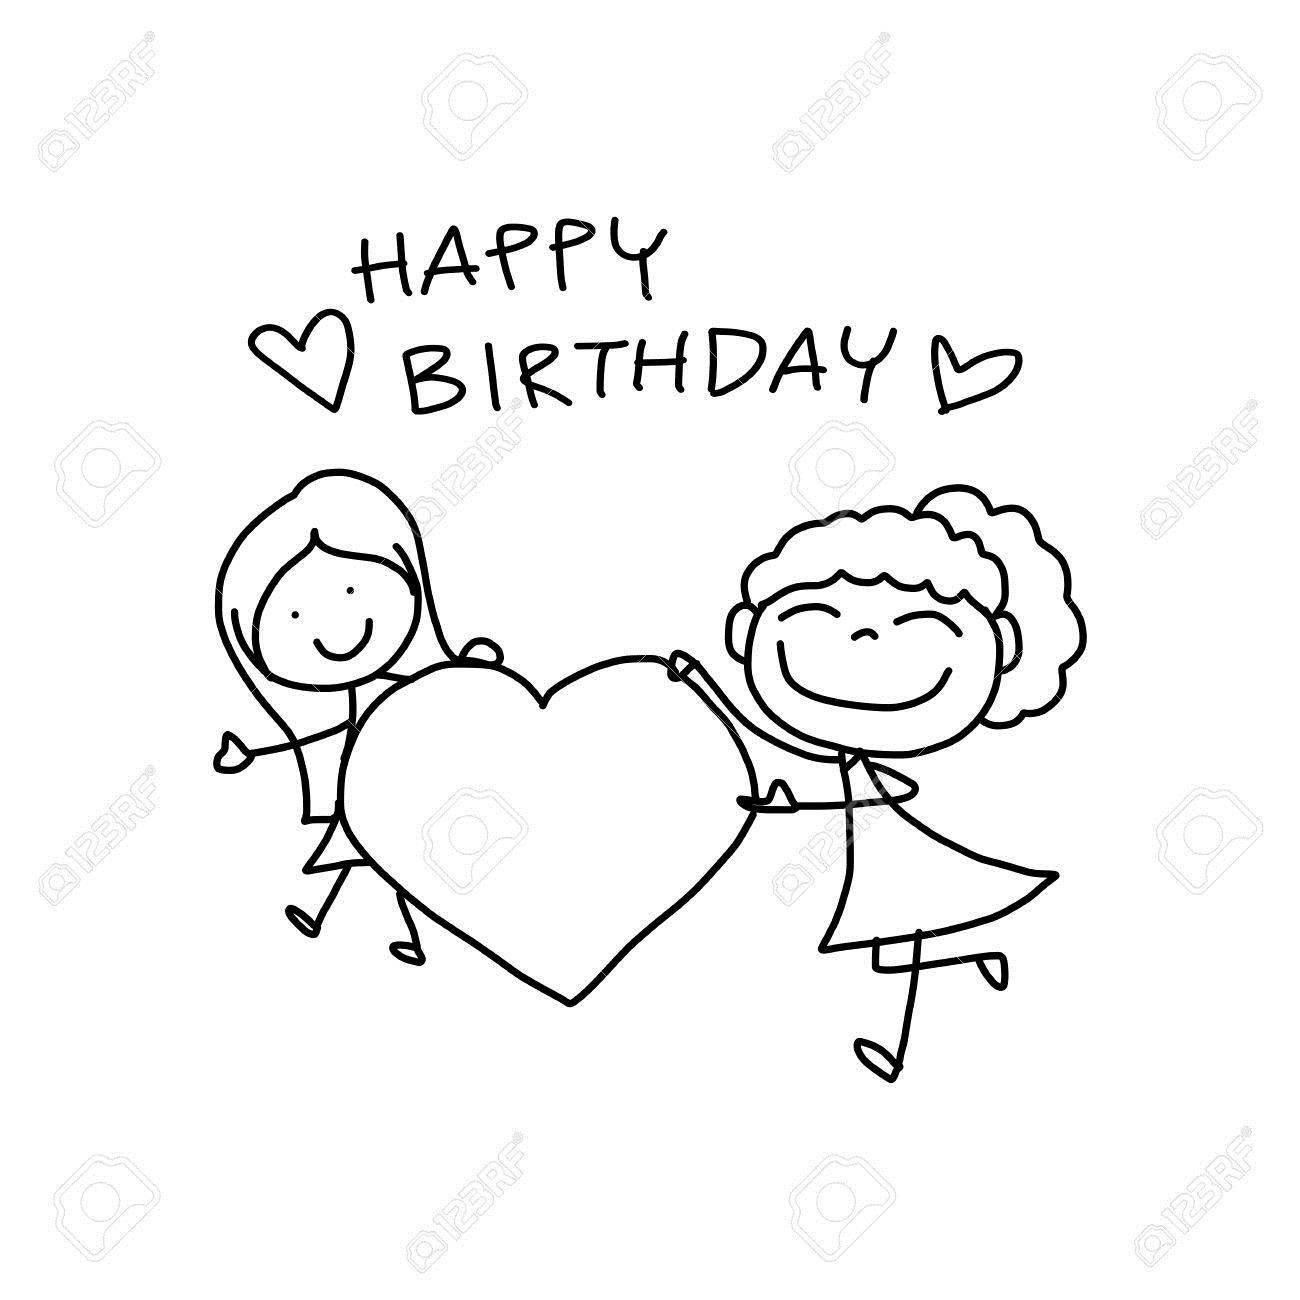 happy birthday cartoon drawing ; happy-birthday-drawing-images-16